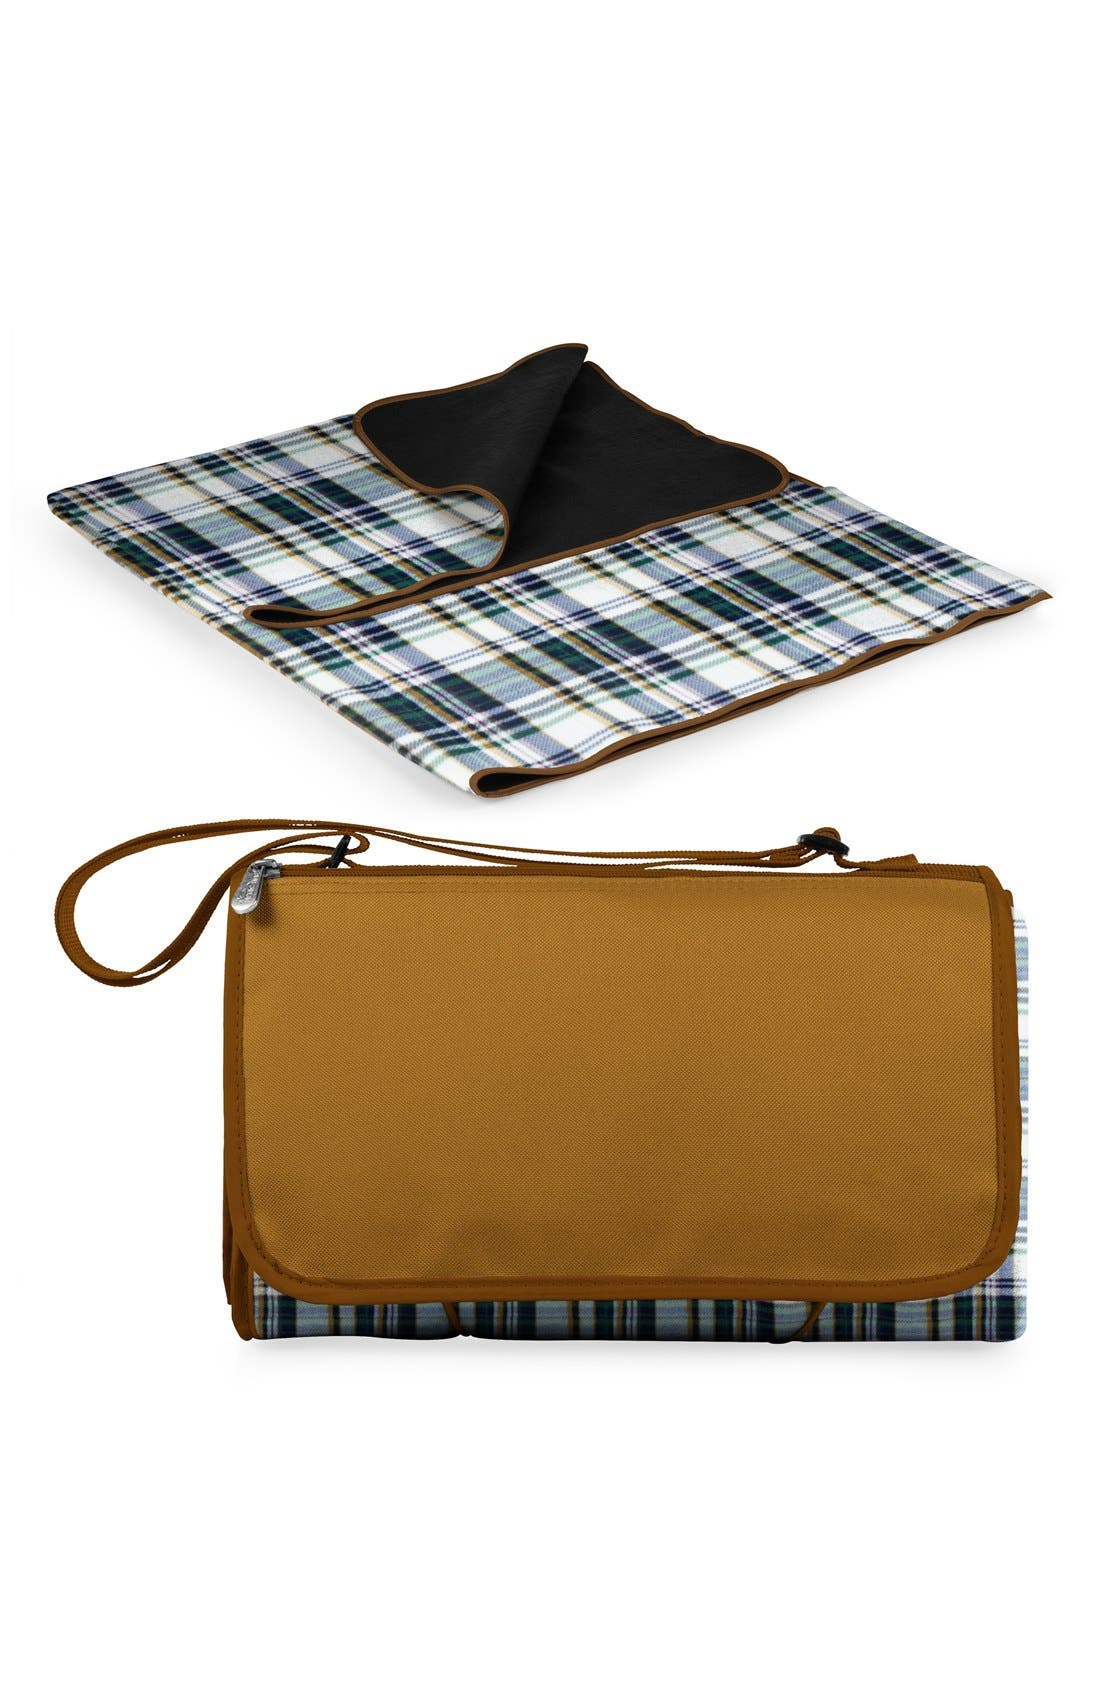 'English Plaid XL' Fold-Up Blanket Tote,                             Alternate thumbnail 4, color,                             BROWN